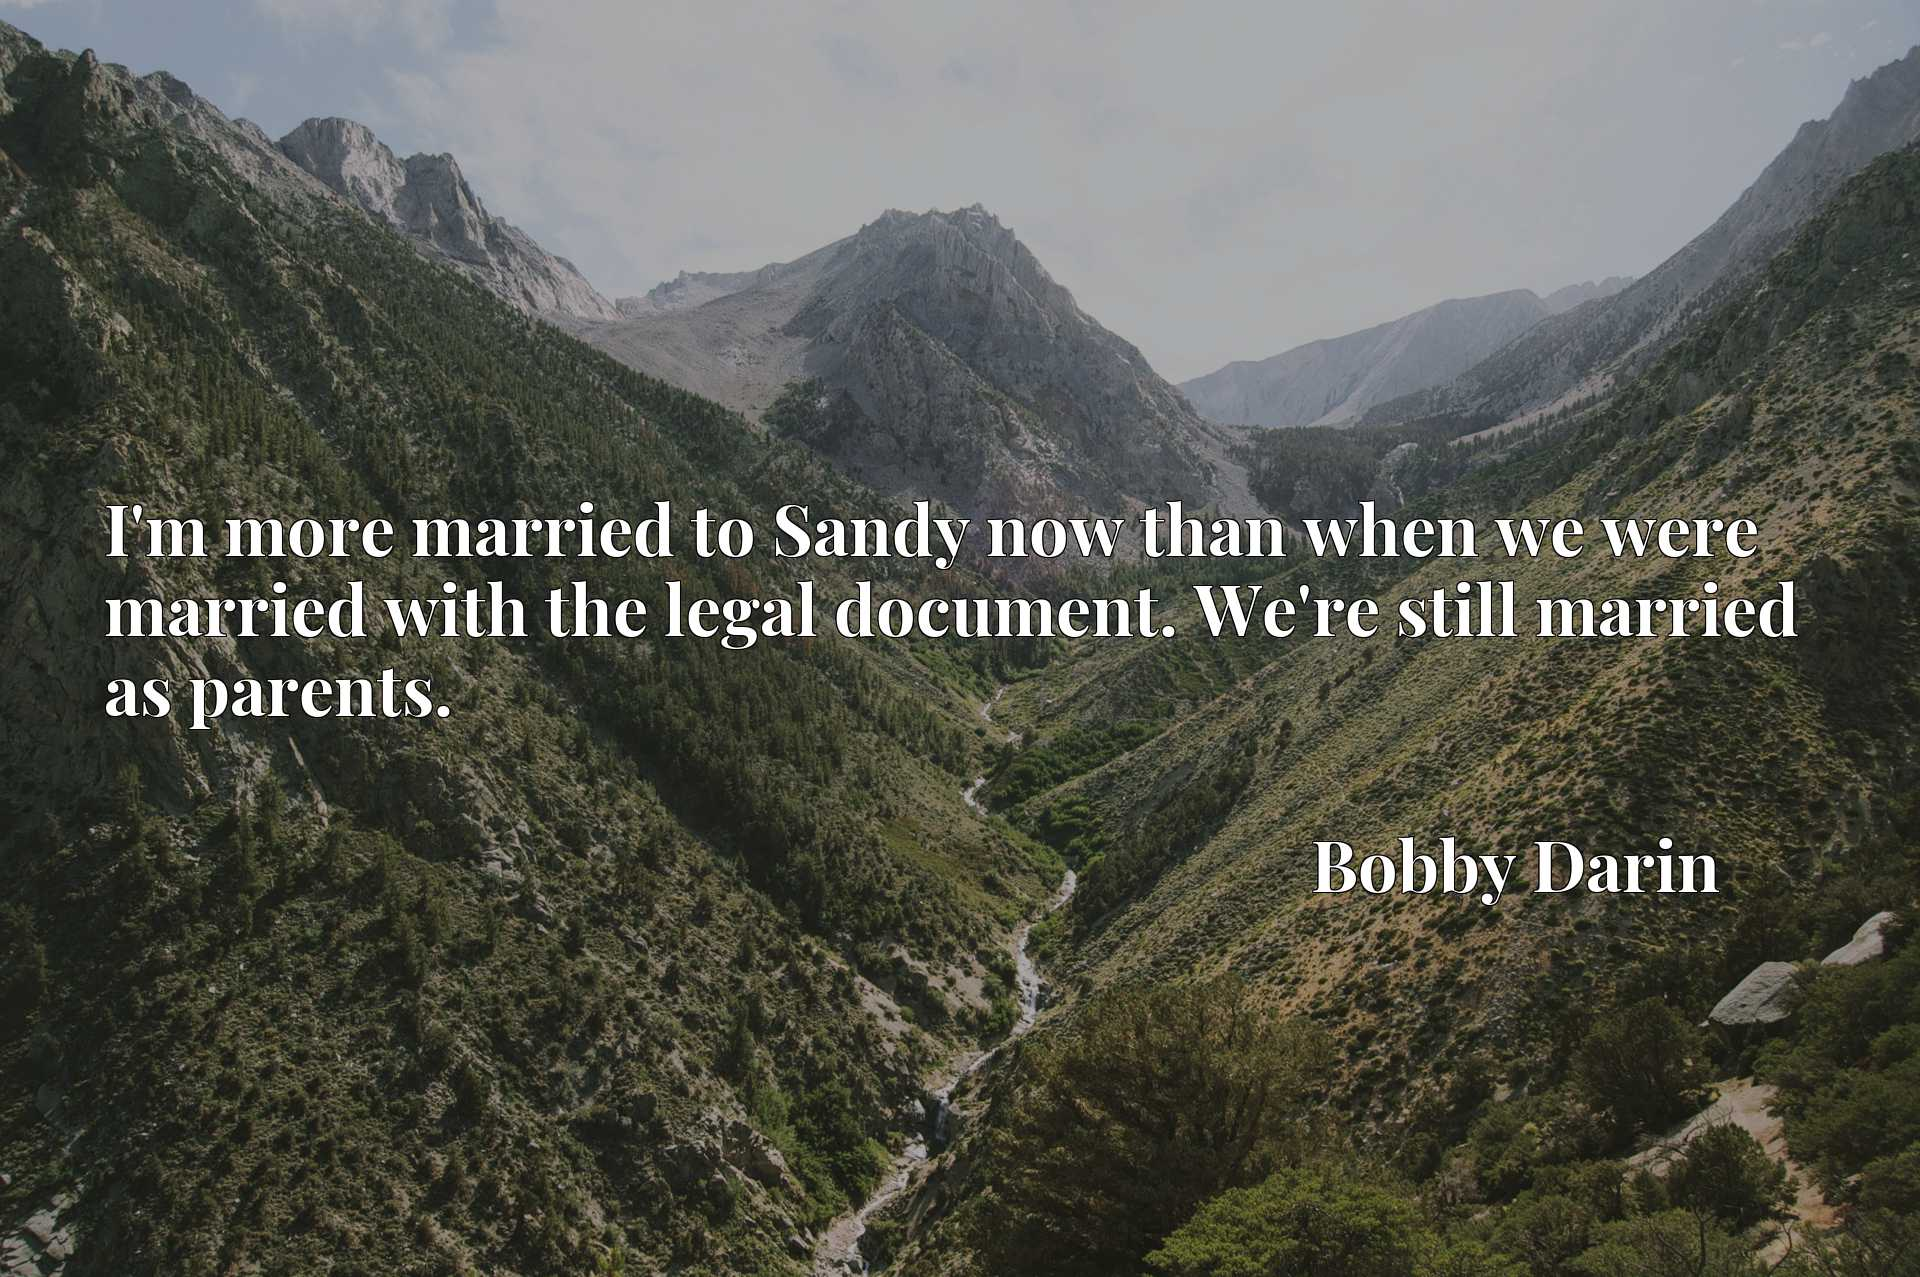 I'm more married to Sandy now than when we were married with the legal document. We're still married as parents.